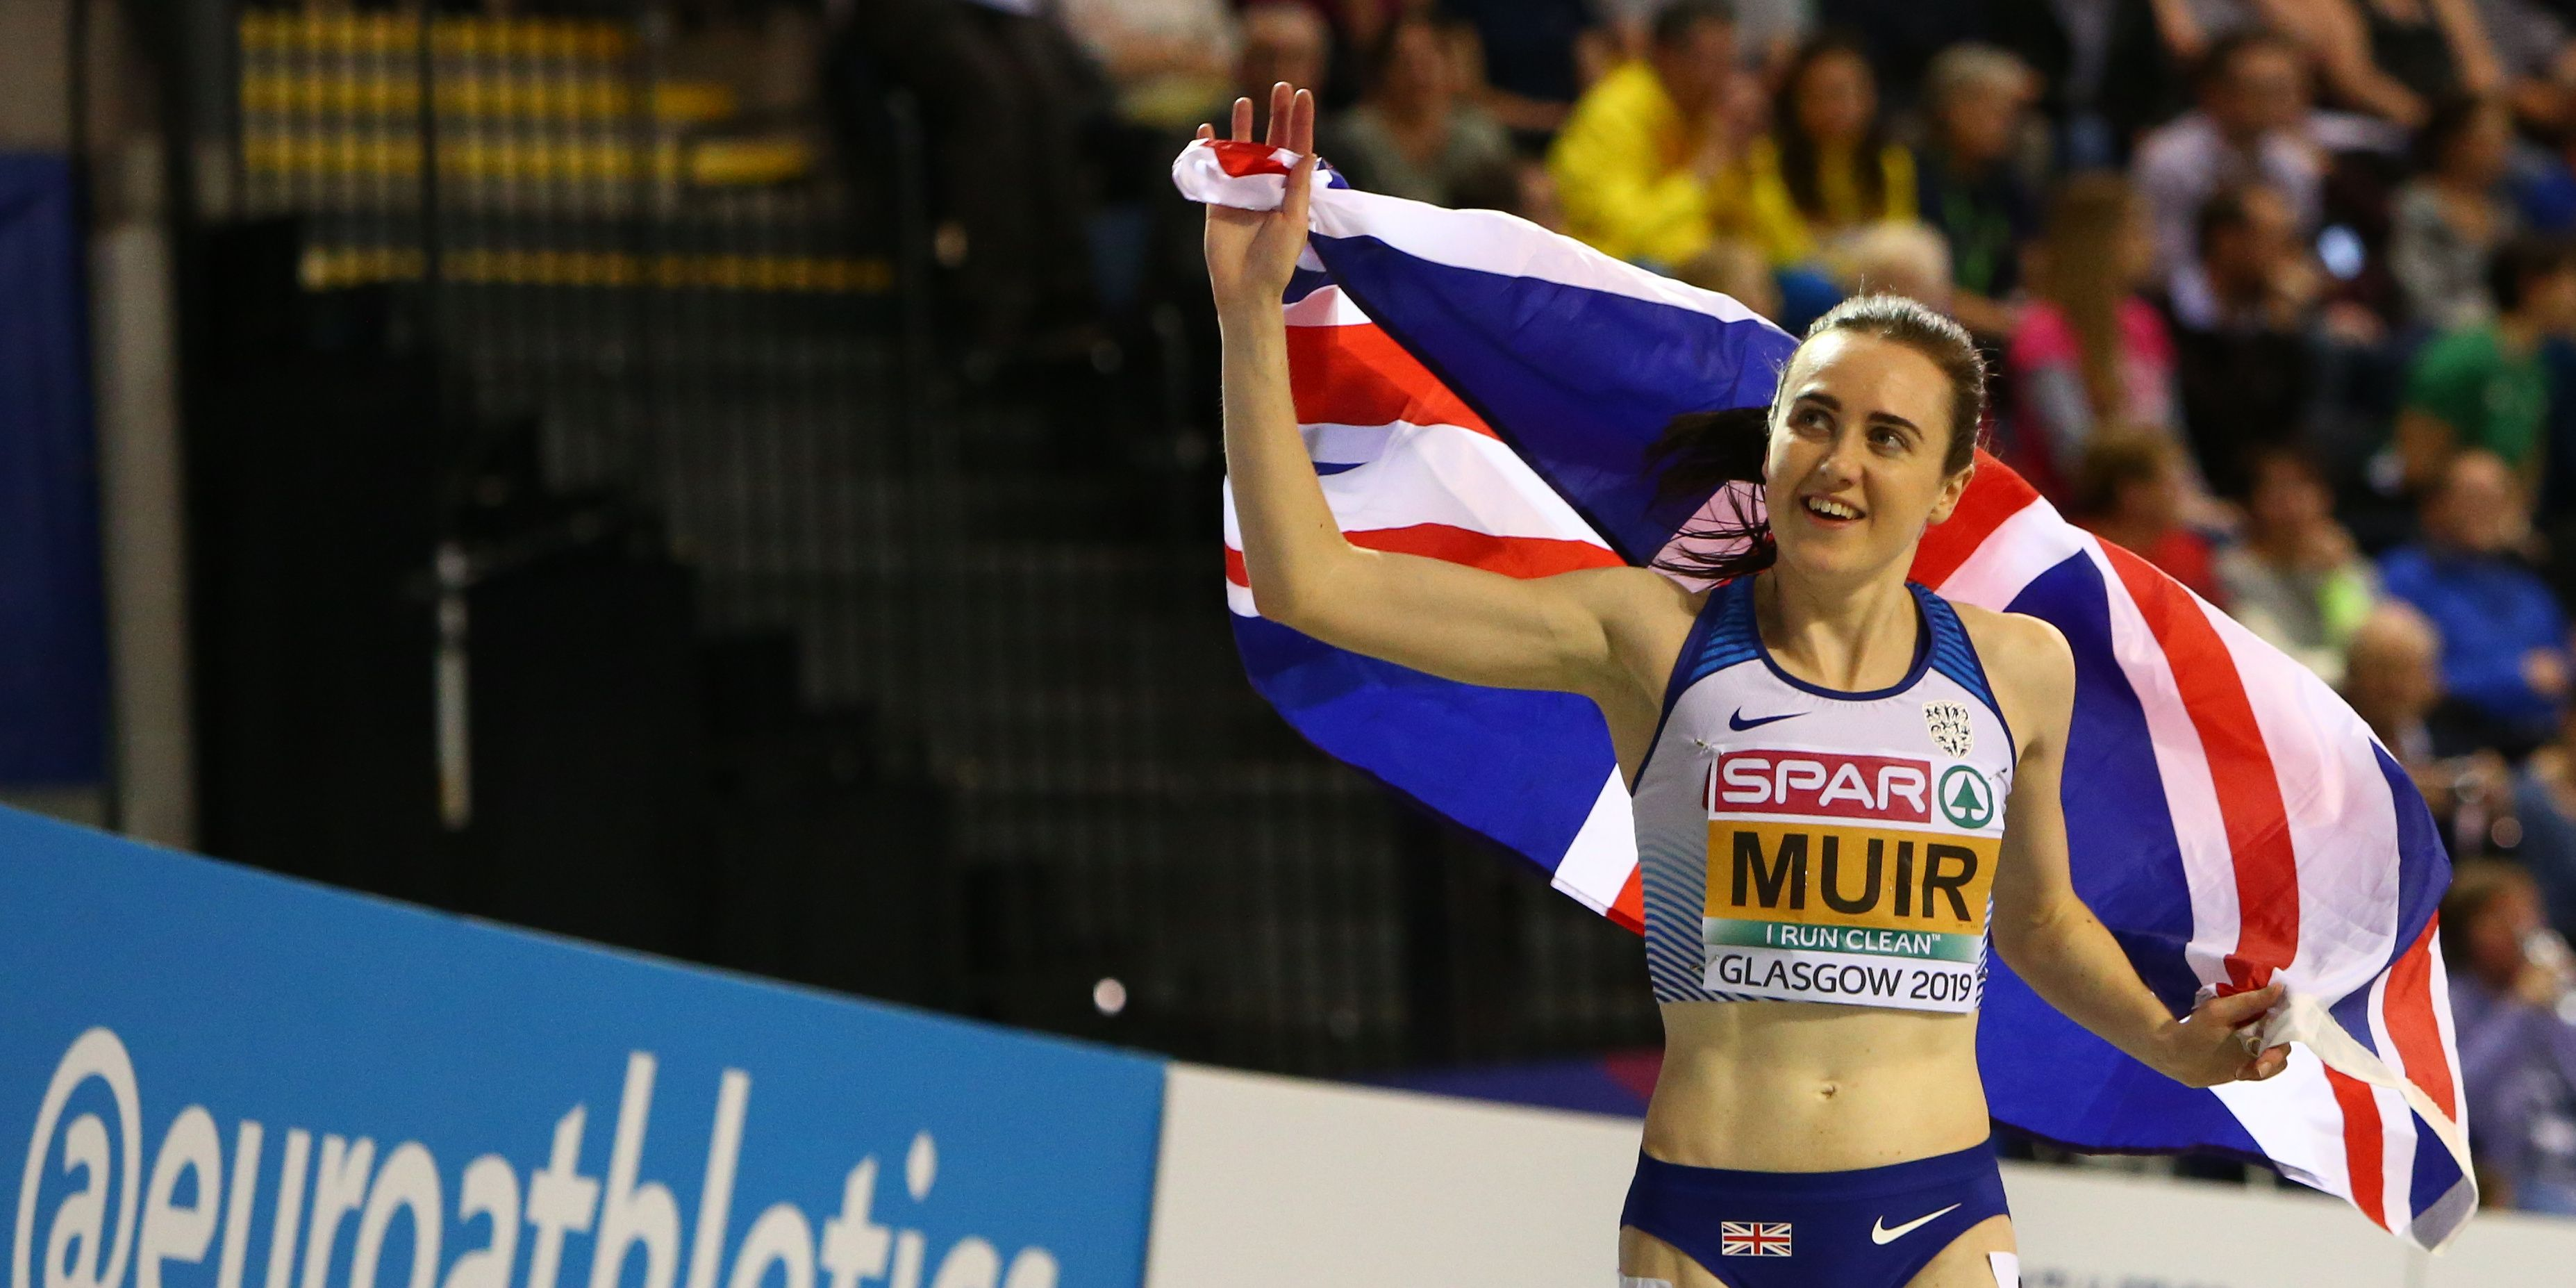 Laura Muir to run Westminster Mile